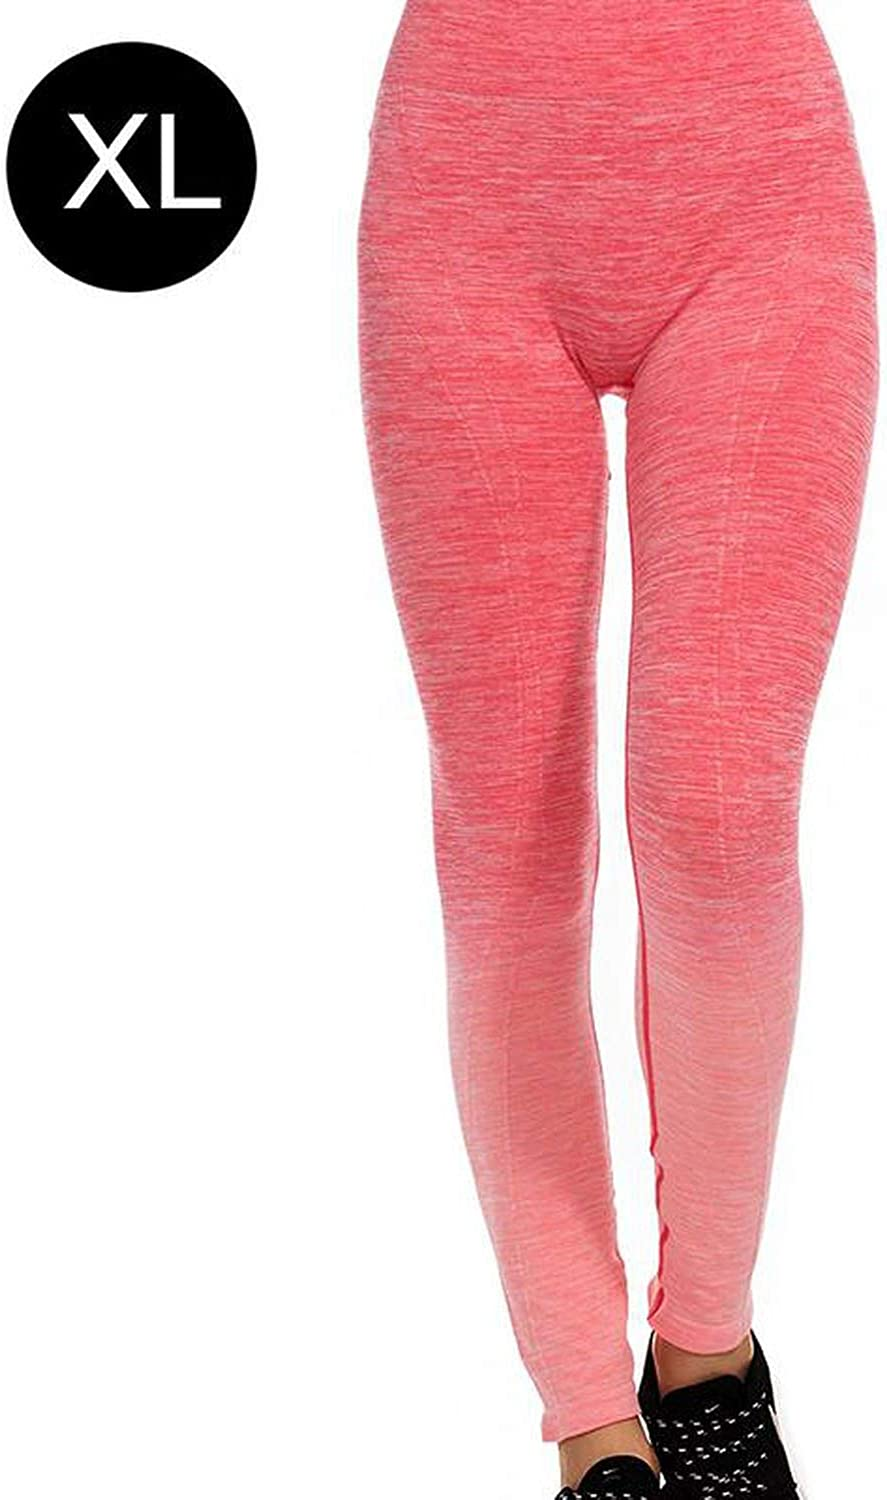 It's a big deal New Gradient nging Dyed Yoga Pants Comfortable Slimming Large Size Work Out Fitness Trousers